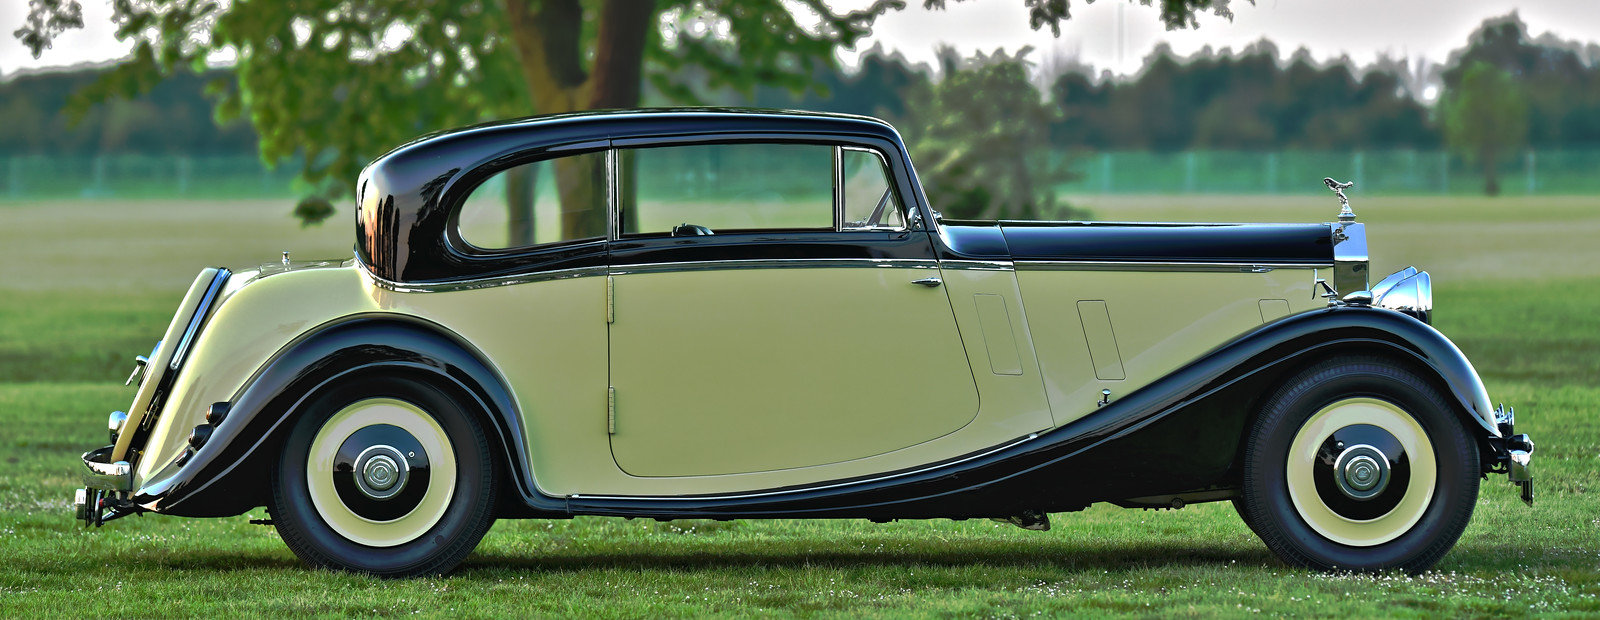 1936 Rolls-Royce 20/25 Sports Coupé by Coachcraft For Sale (picture 3 of 6)